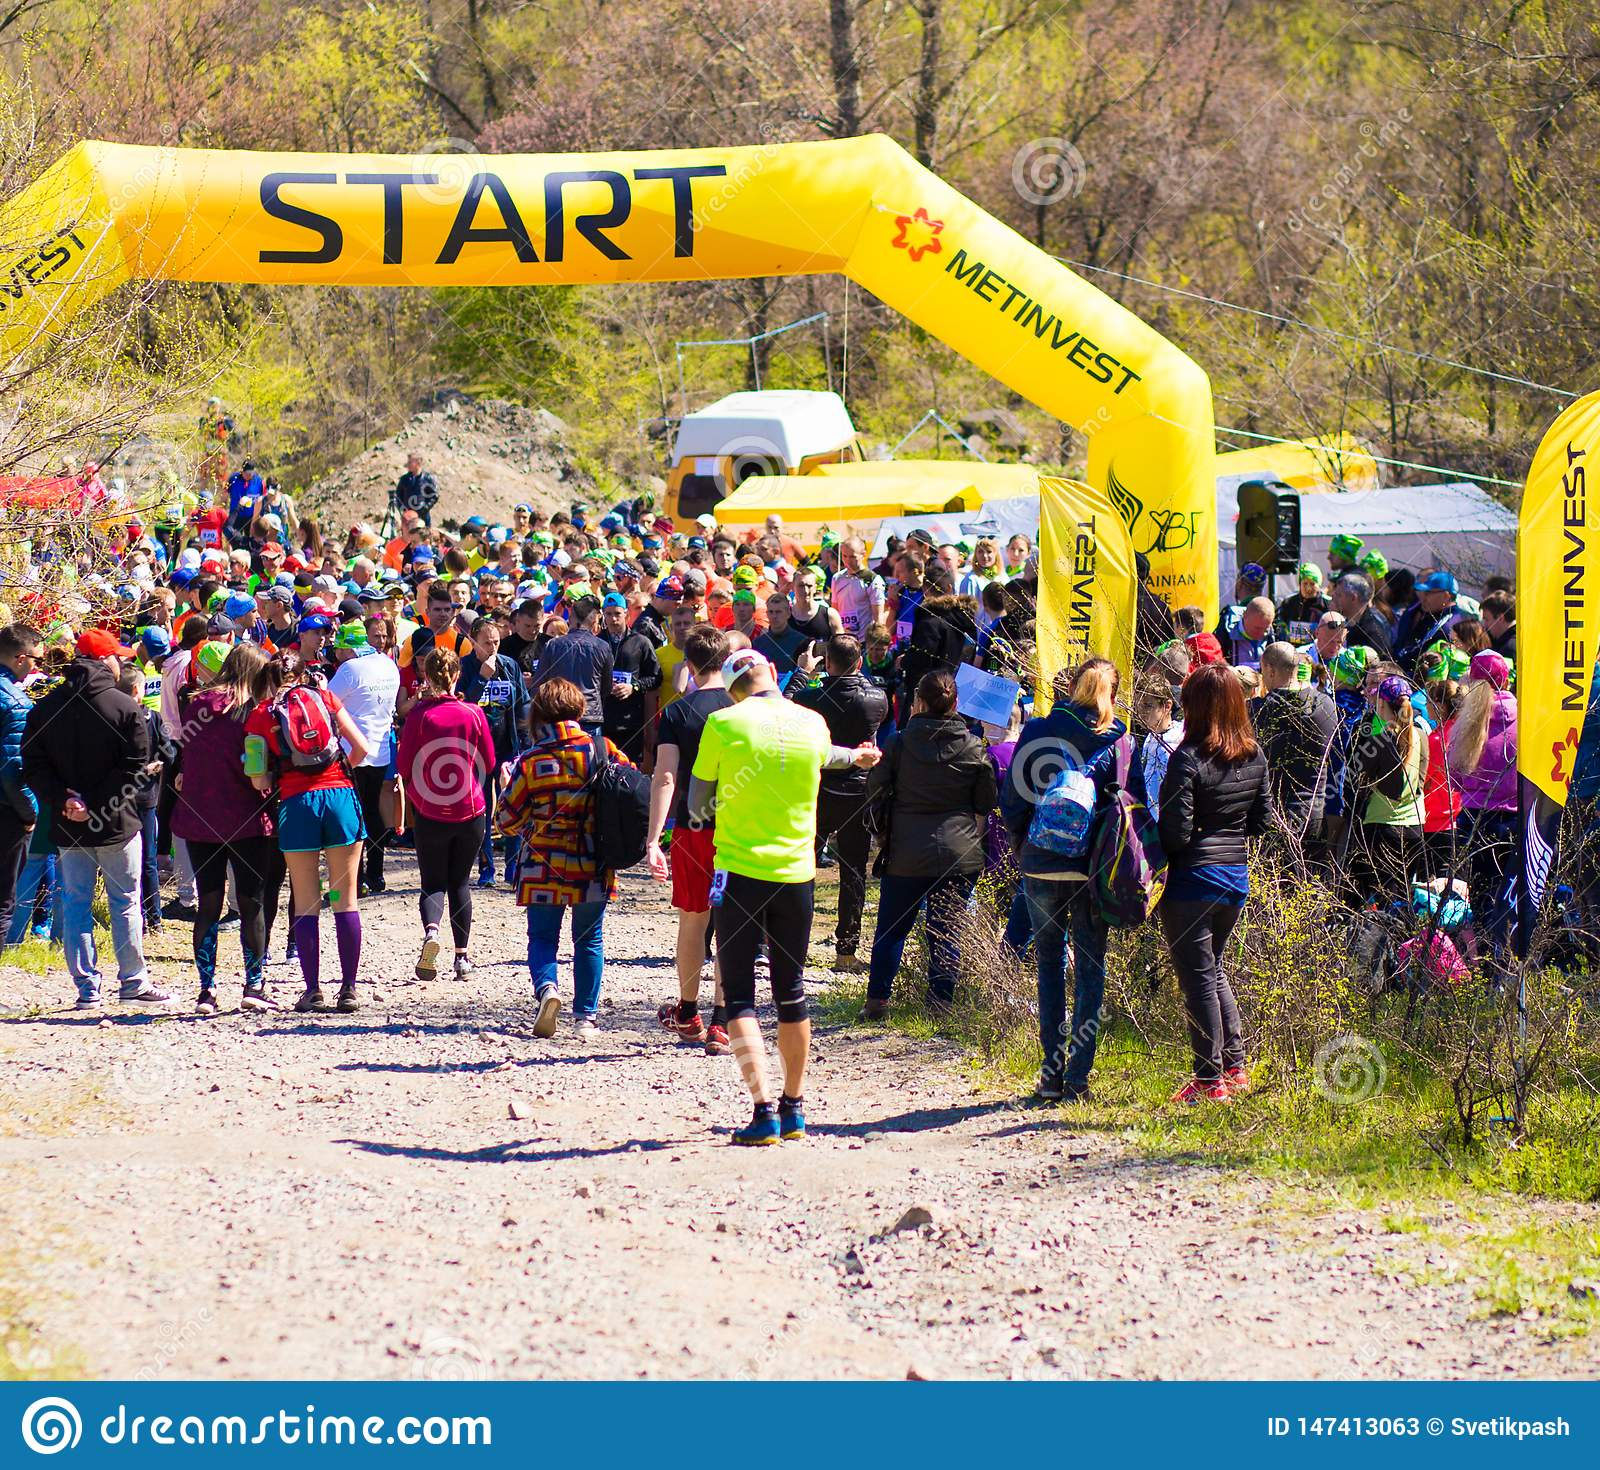 Krivoy Rog, Ukraine - 21 April, 2019: Group of young athletes in start position. Fit young people preparing for Marathon